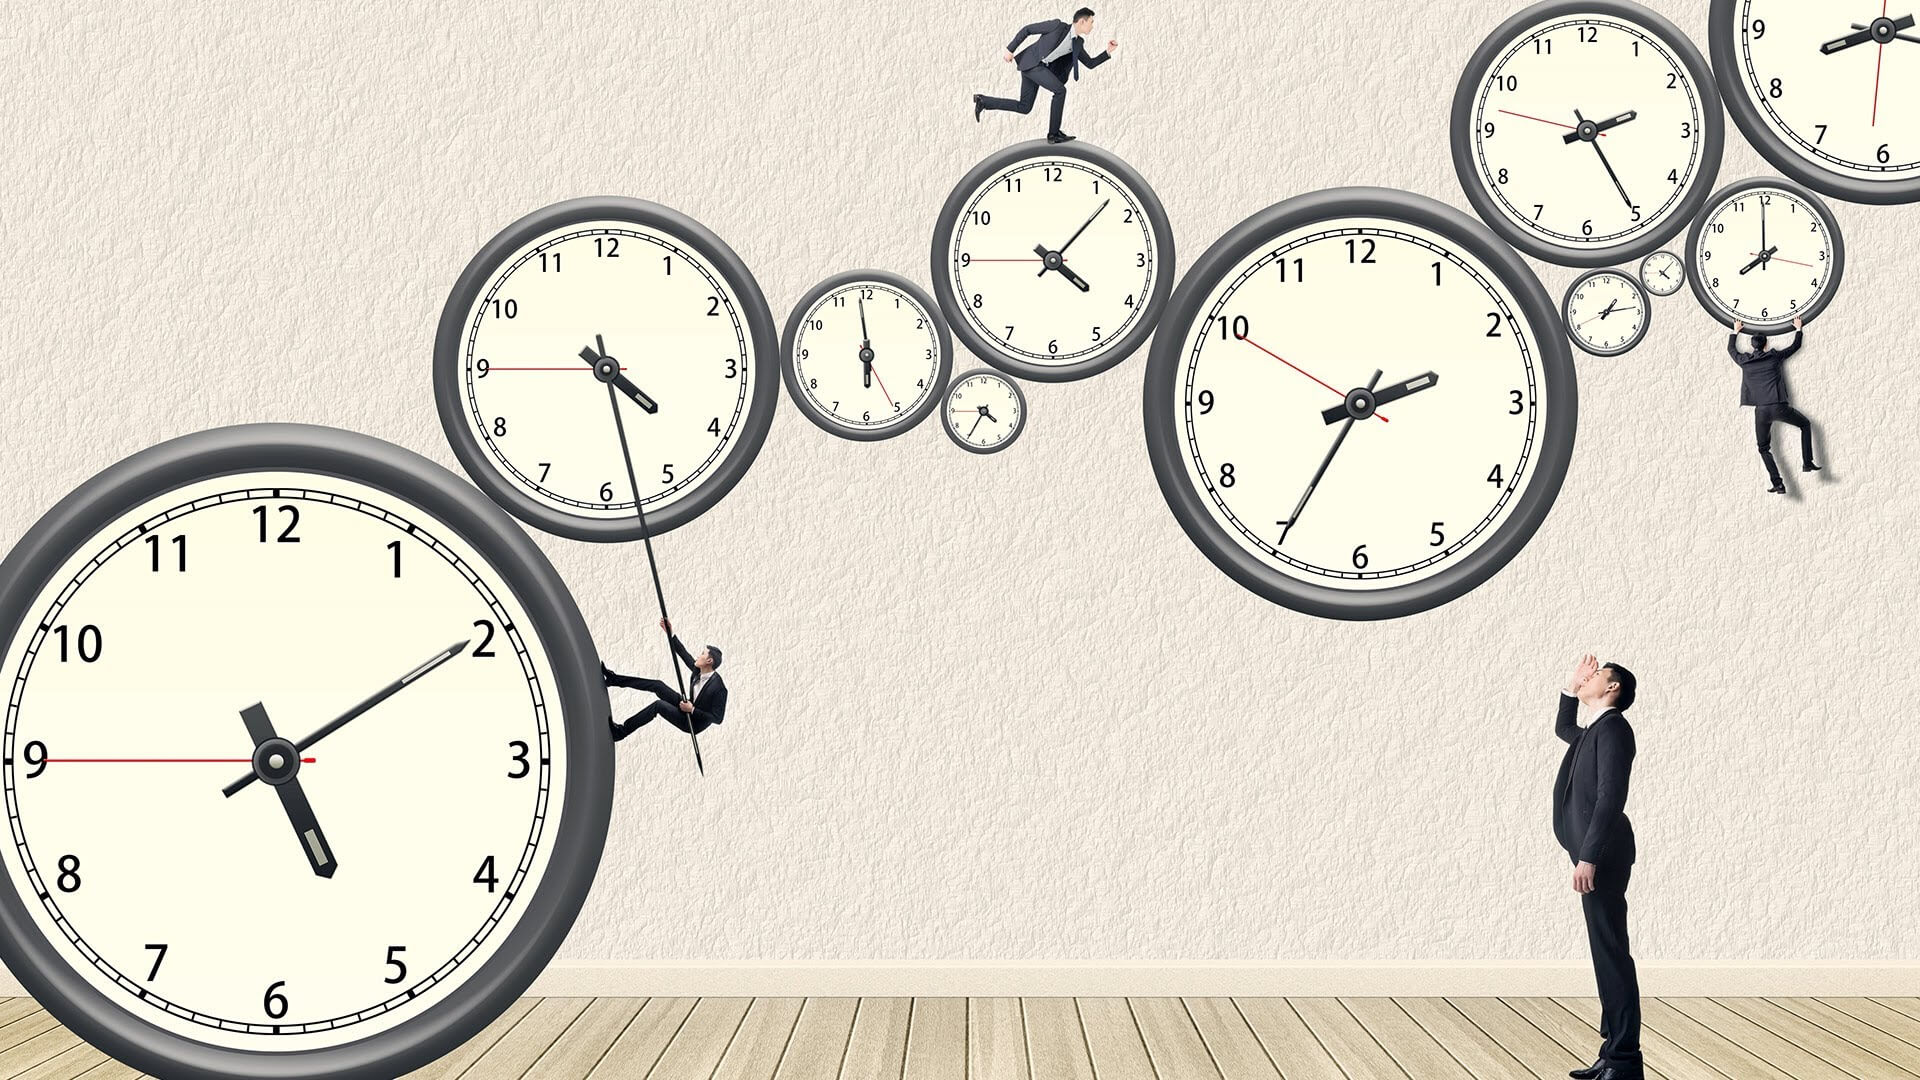 time C time library this header file contains definitions of functions to get and manipulate date and time information.